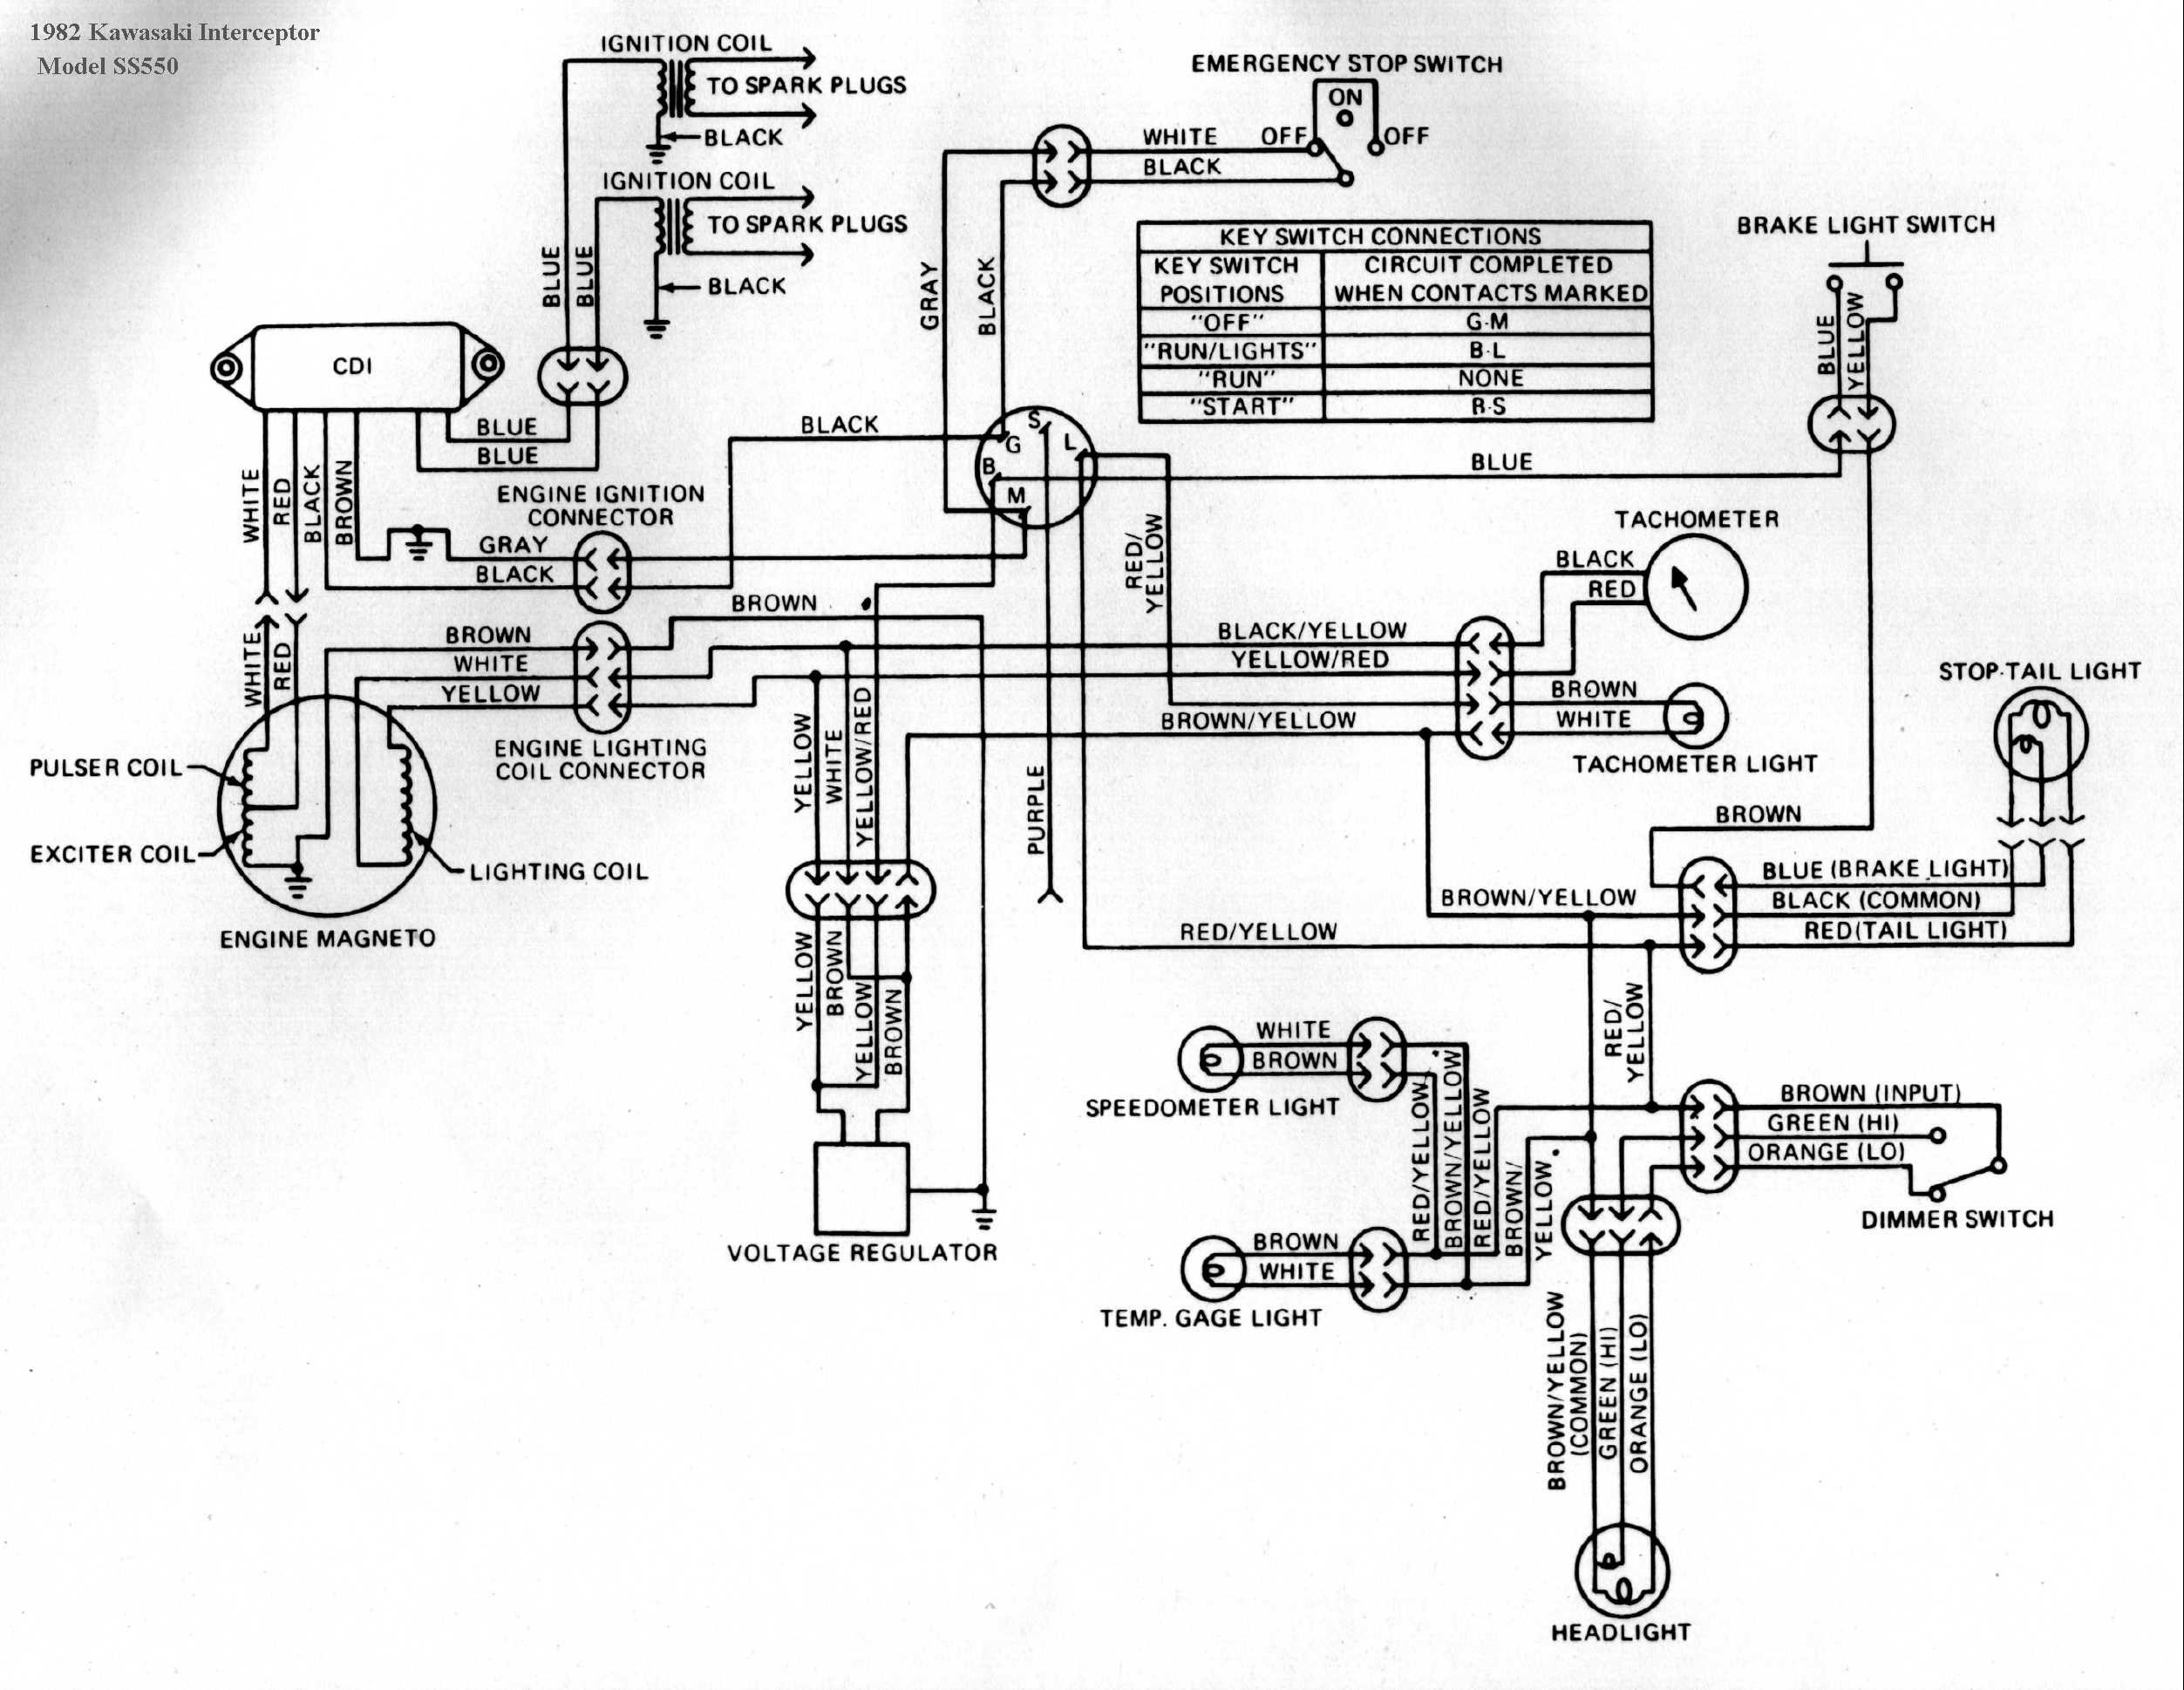 ss550 kawasaki snowmobile wiring diagrams Ski-Doo Rev Wire Diagram at readyjetset.co